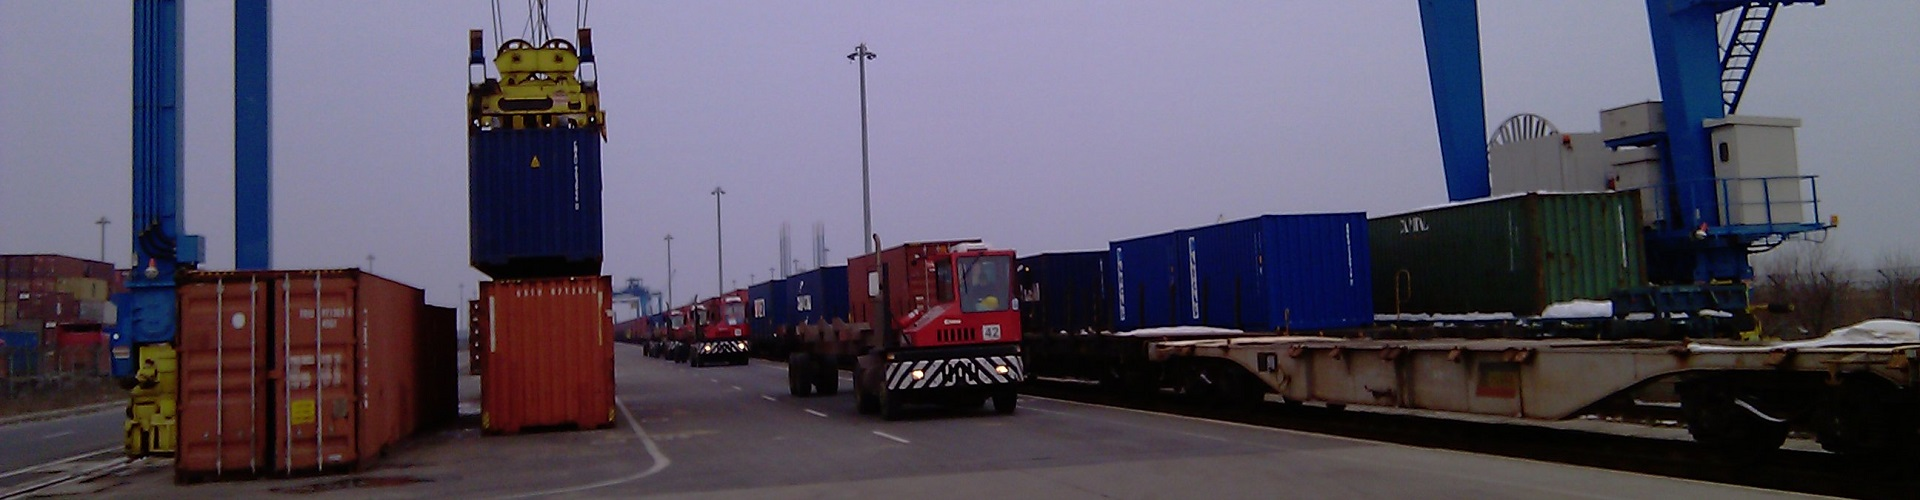 1920x500 - Container Loading